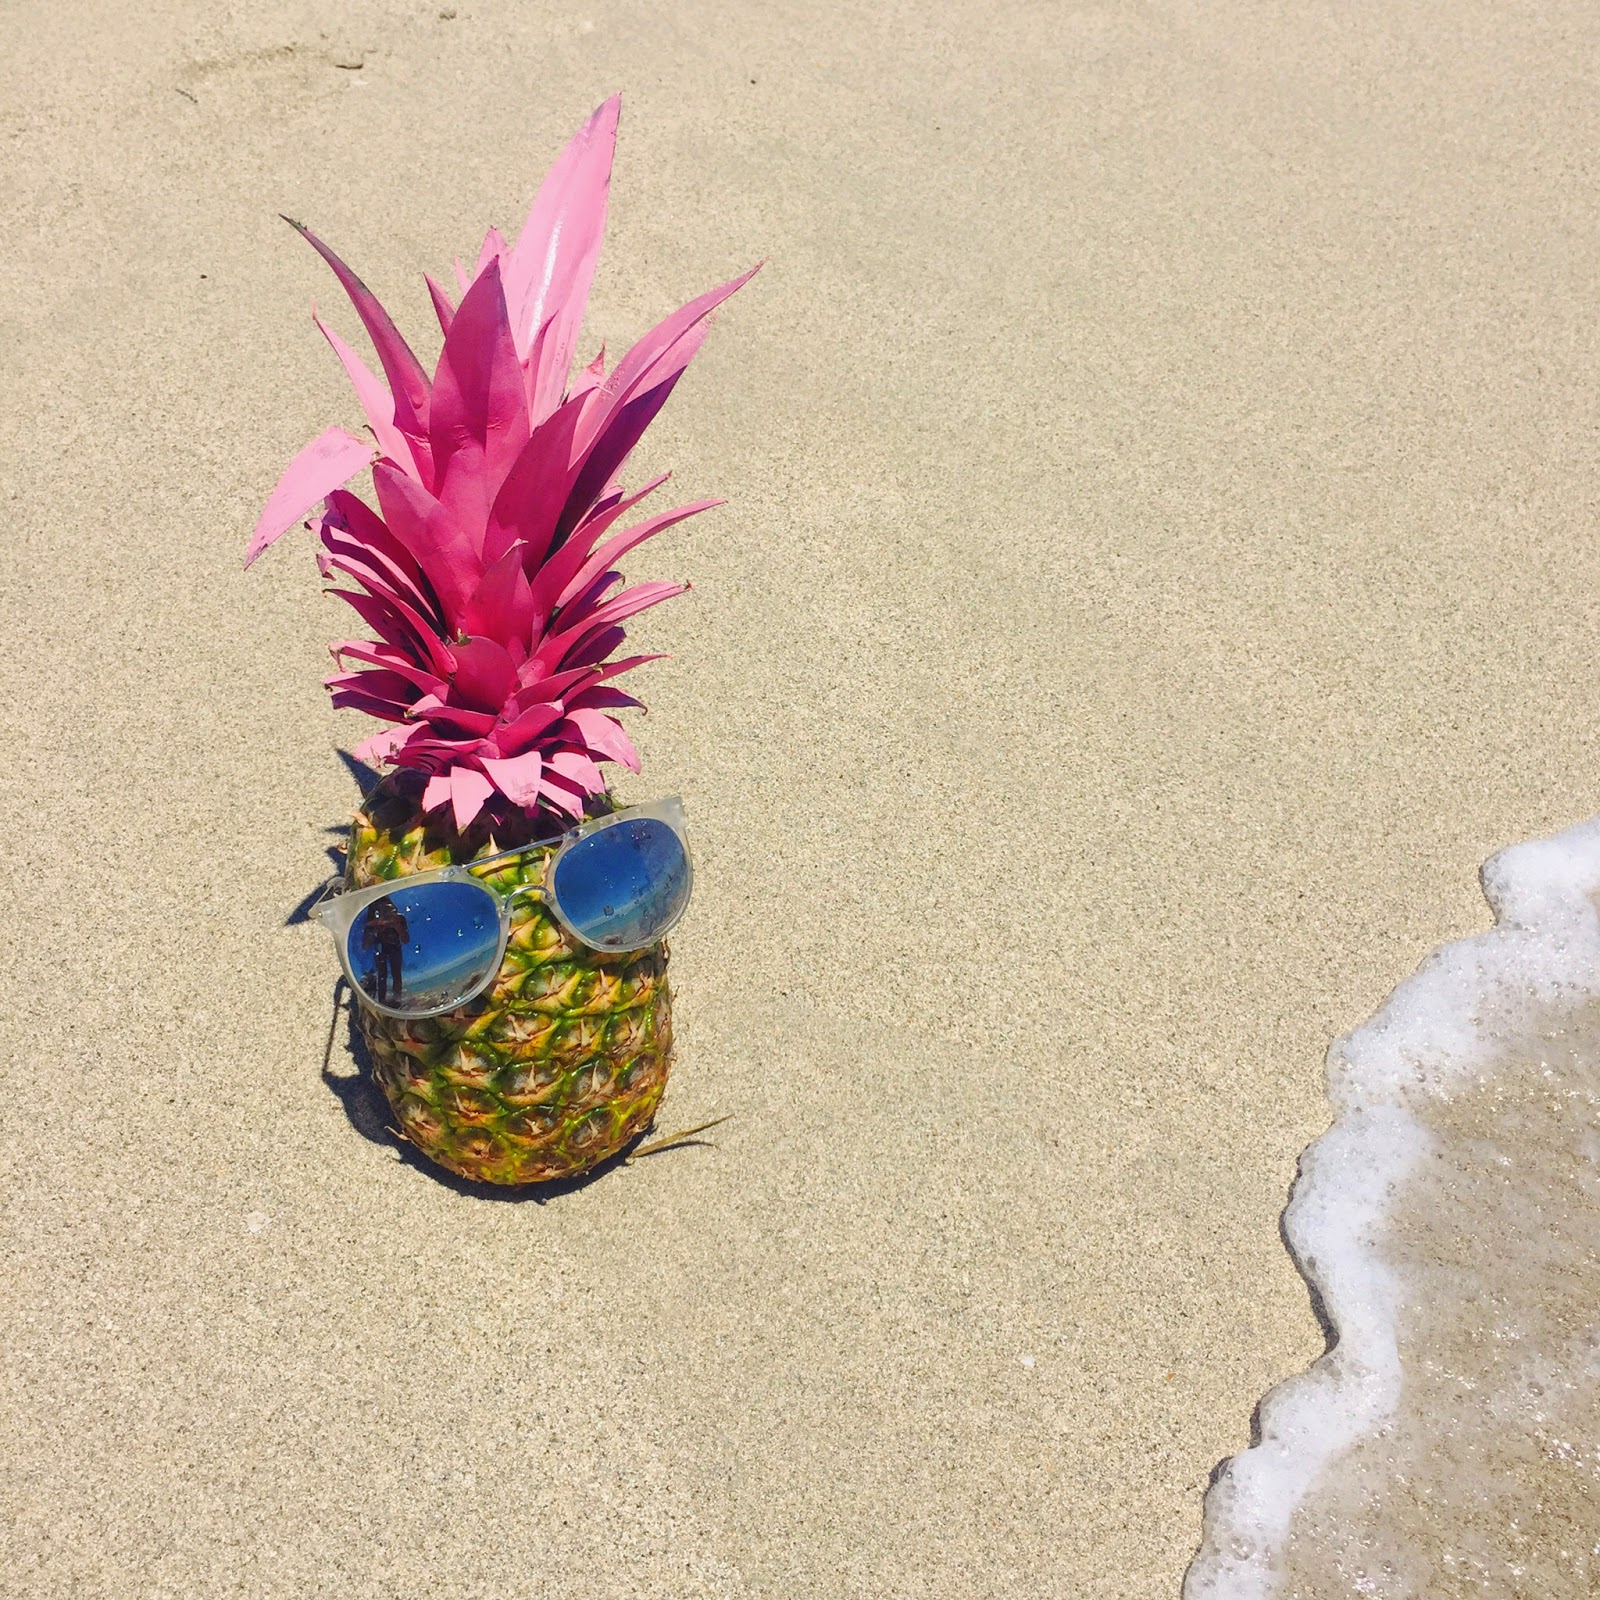 painted pineapple, beach decoration, how to decorate with pineapples